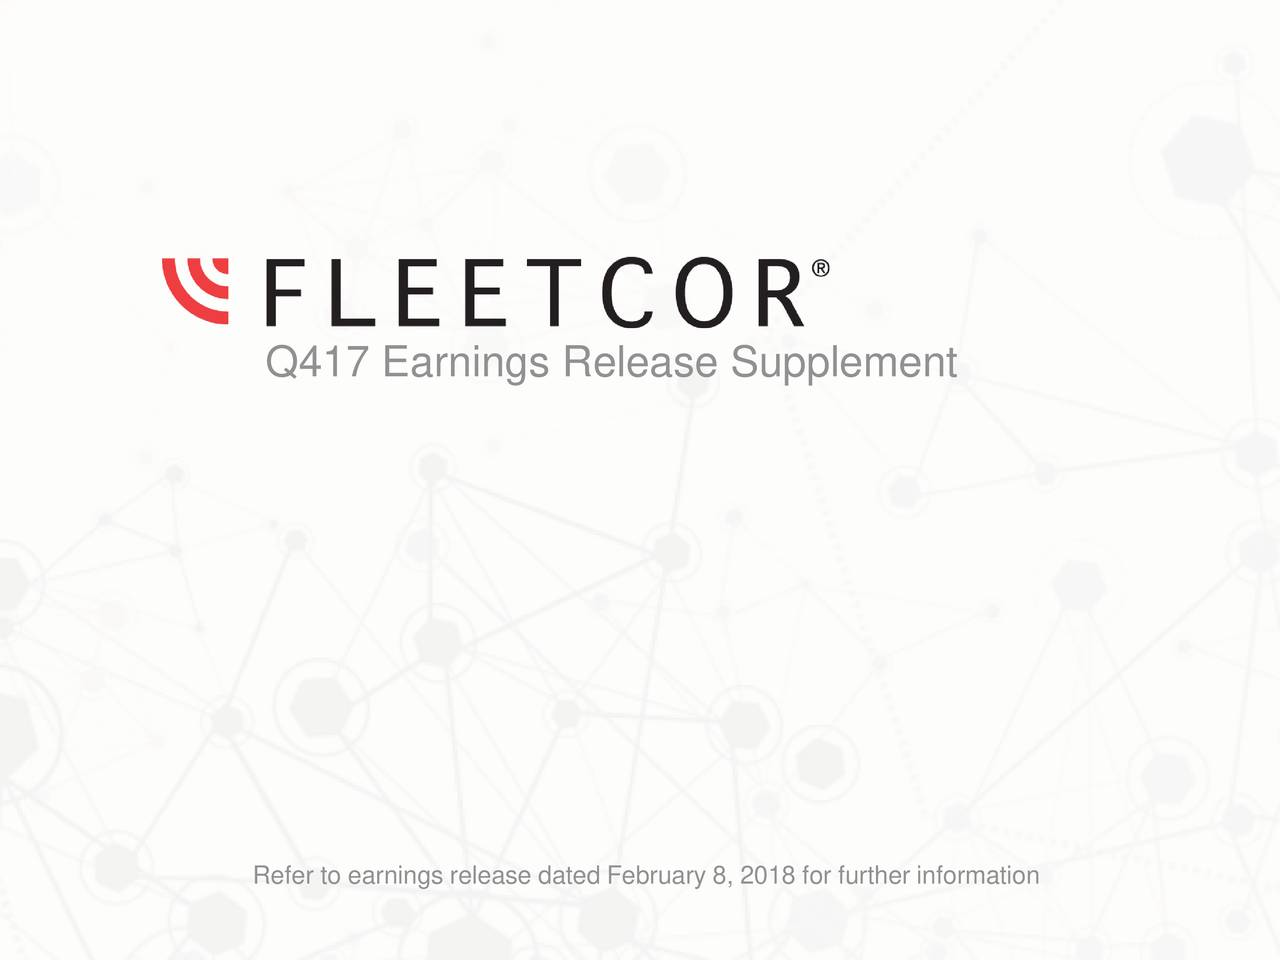 Refer to earnings release dated February 8, 2018 for further information